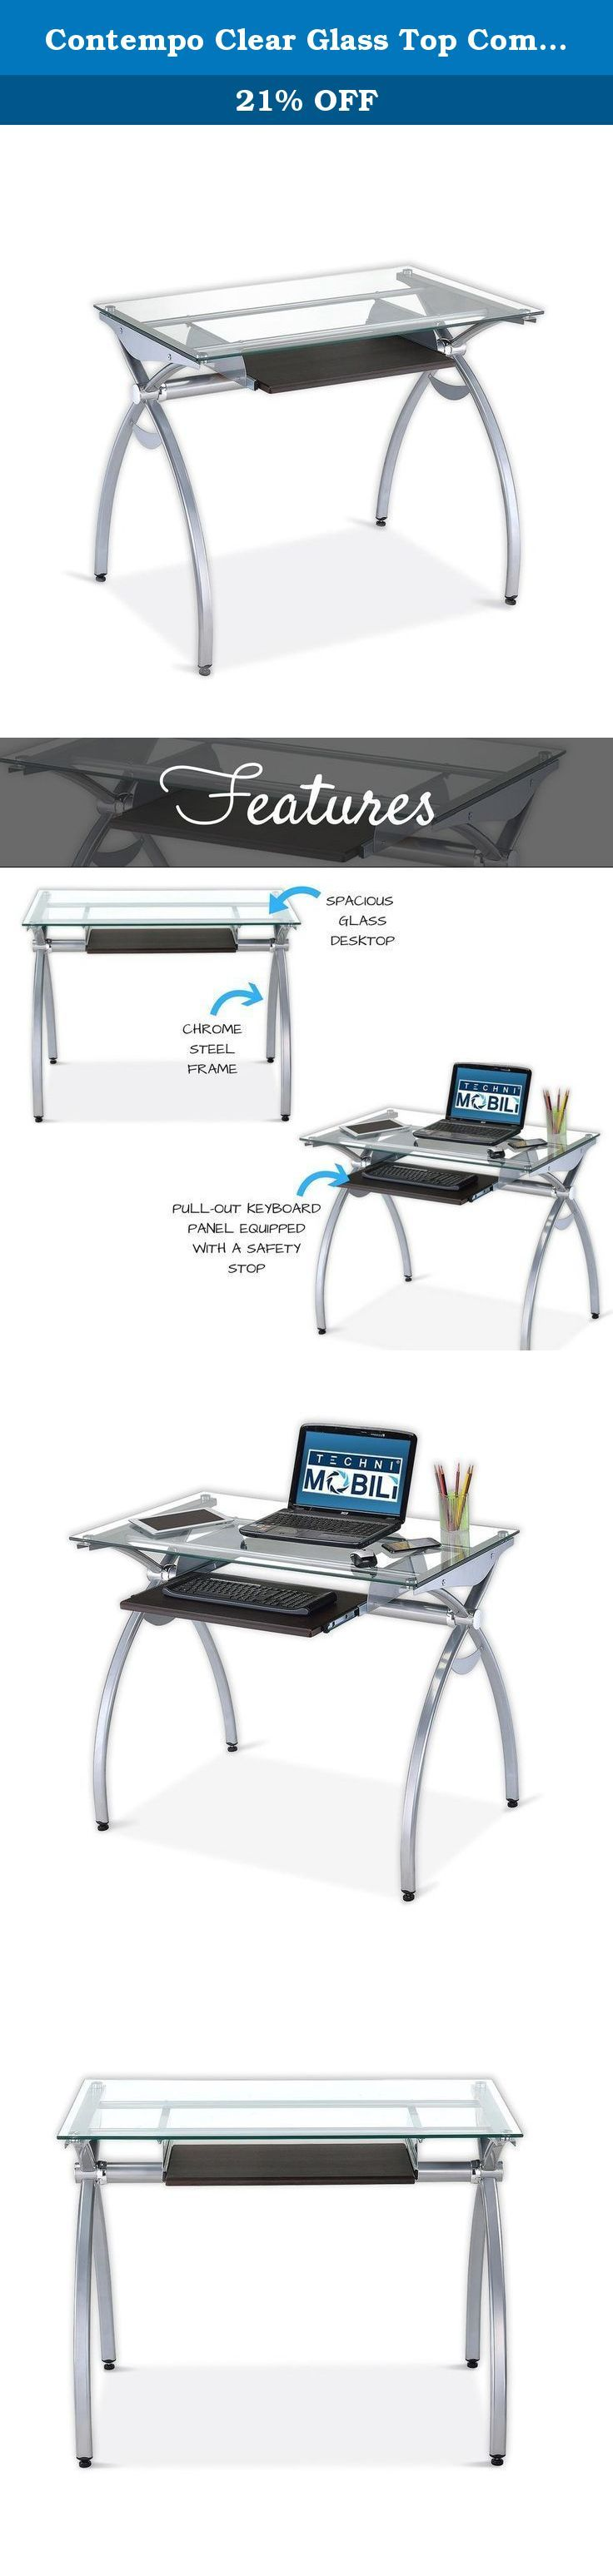 Contempo Clear Glass Top Computer Desk With Pull Out Keyboard Panel. Color: Clear. The contempo style of this Techni Mobili Glass-Top Computer Desk brings a crisp and smart ambiance to any office. It features a heavy-duty 8 mm tempered safety glass desktop, the stylish lines of a curved scratch-resistant powder-coated steel frame, and a pull-out keyboard shelf with moisture resistant PVC laminate veneer in a Mahogany finish. With its compact footprint you can furnish your workspace with...